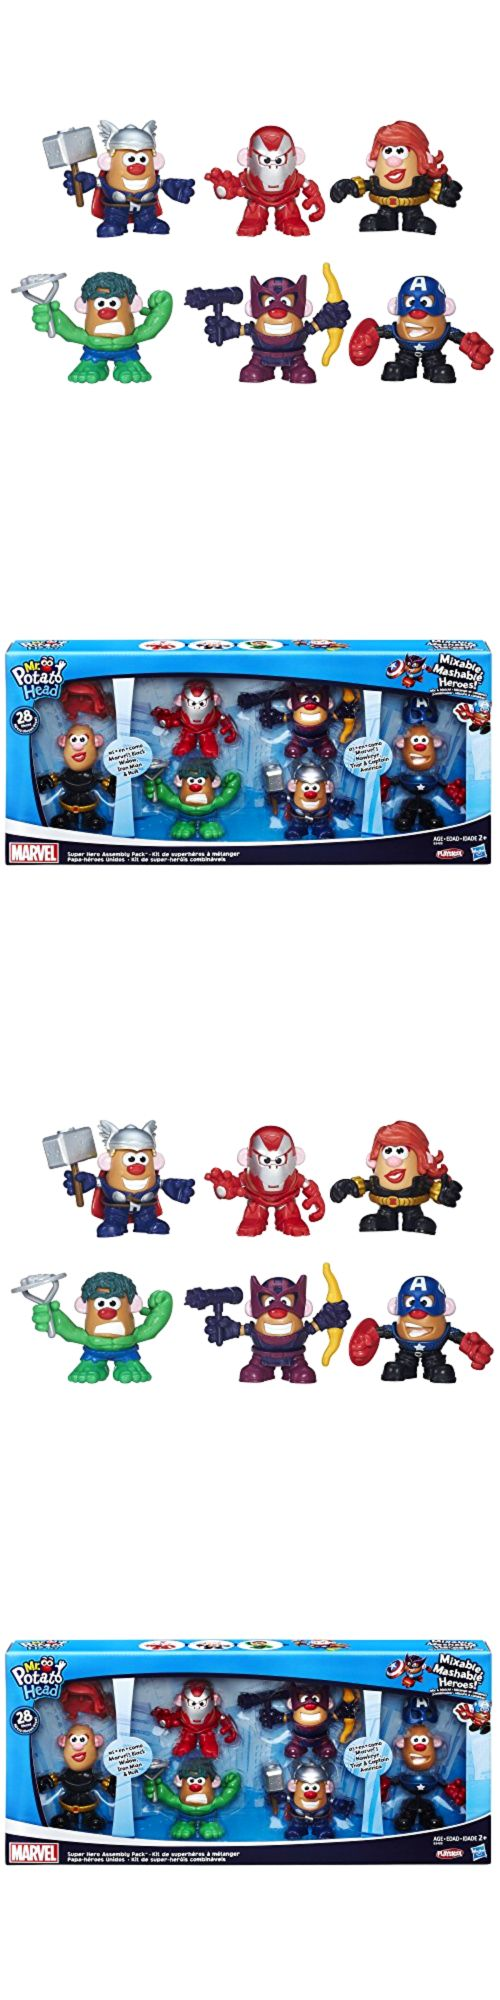 Playskool 2576: Marvel Playskool Mixable, Mashable Heroes! Super Hero Assembly Pack Mr. Potato -> BUY IT NOW ONLY: $45.34 on eBay!